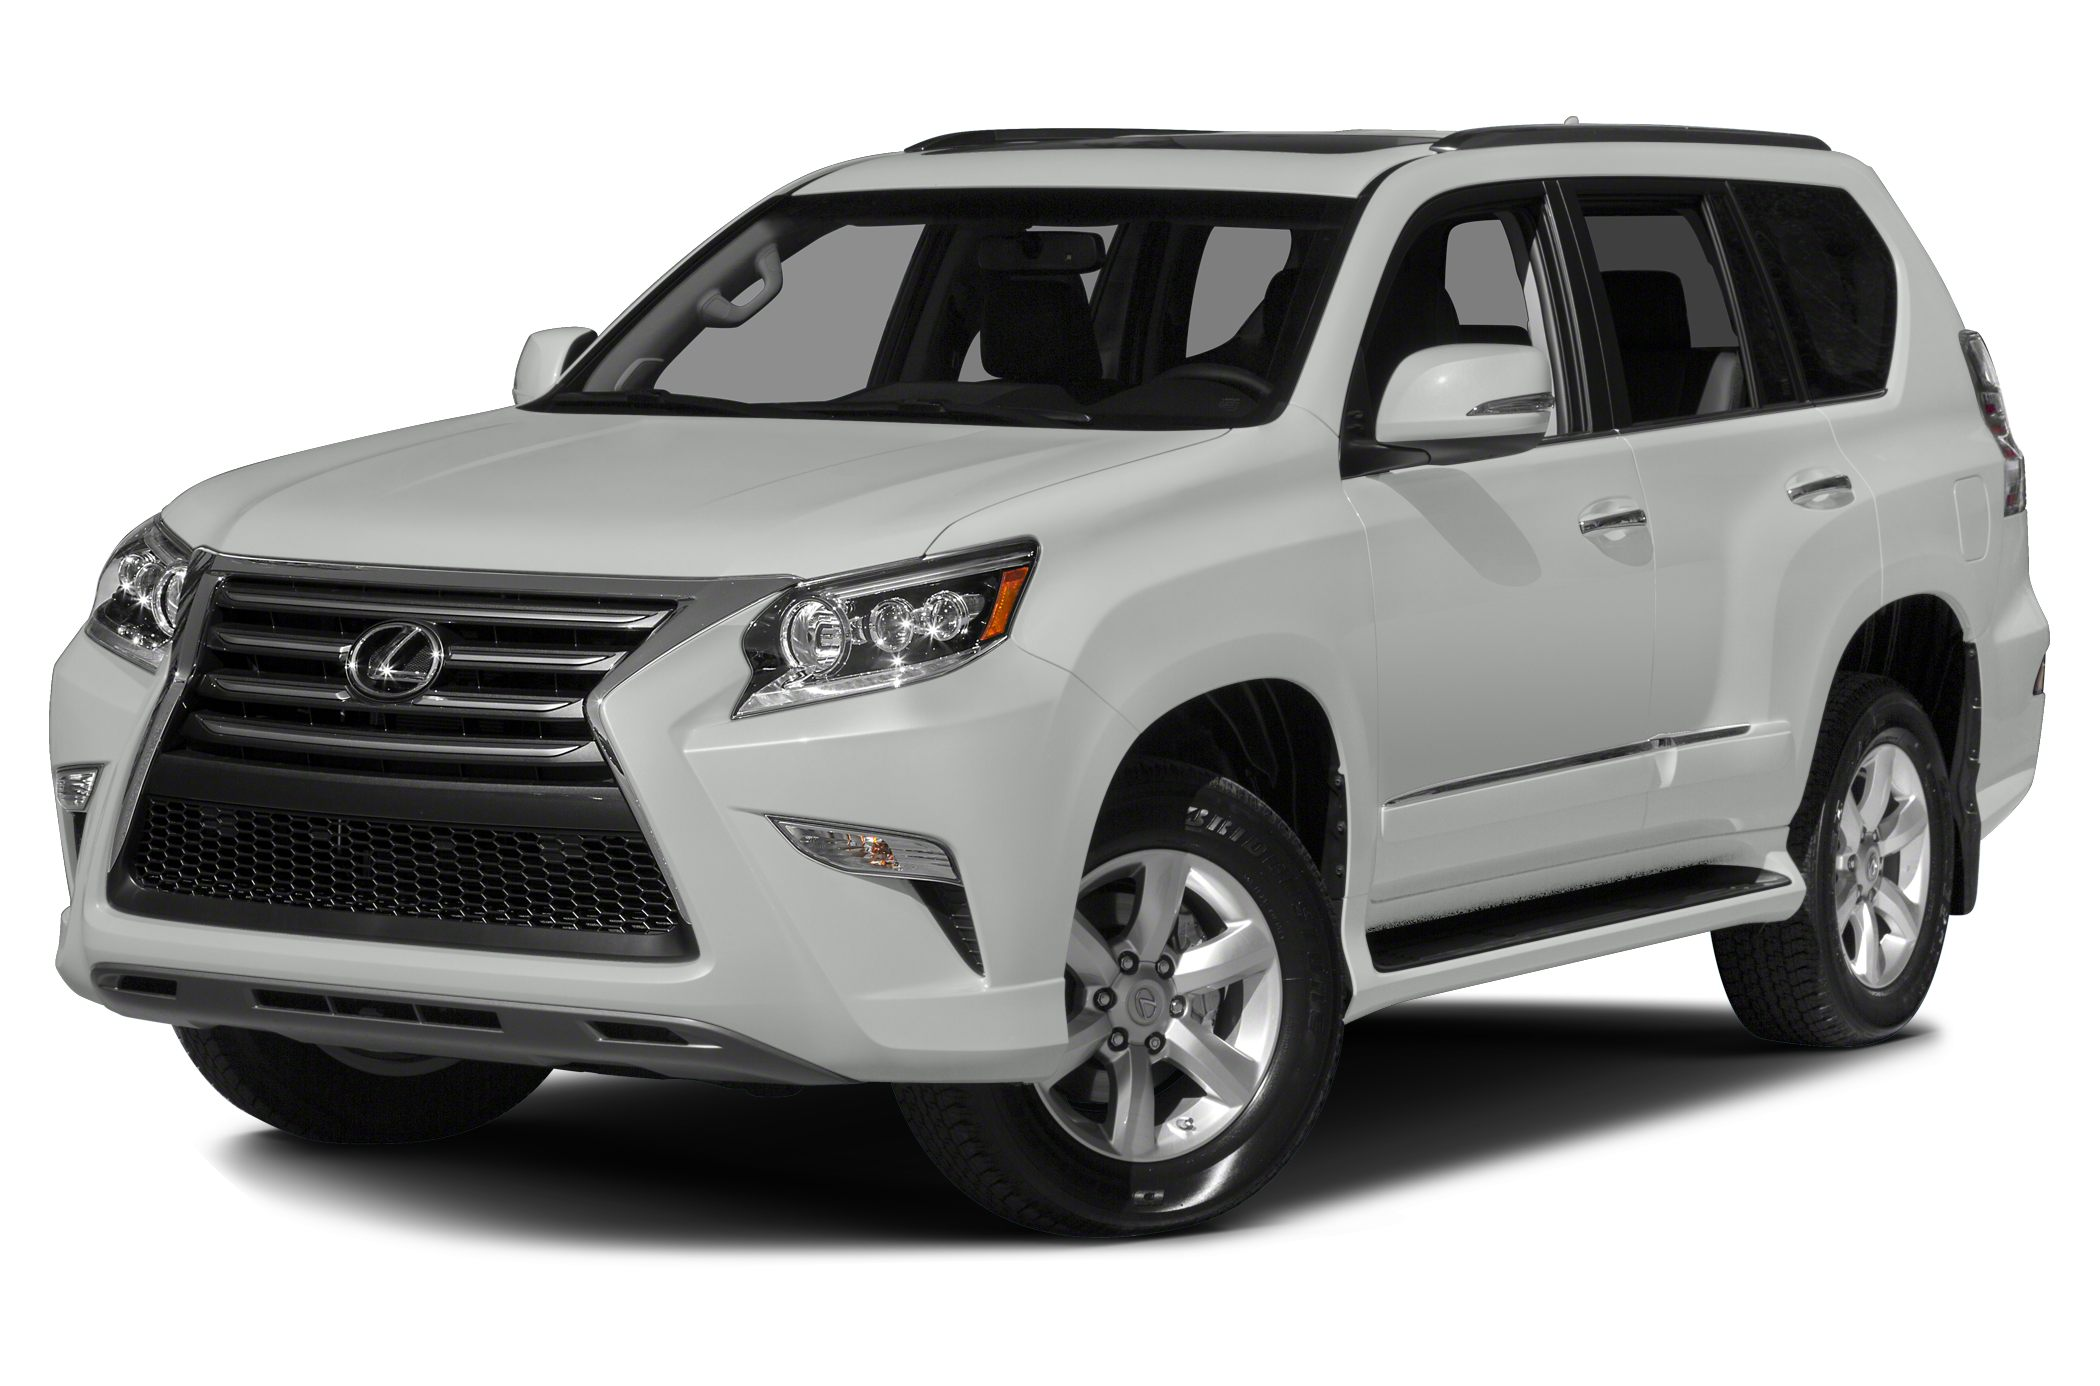 2015 Lexus GX 460 Luxury SUV for sale in Tulsa for $64,932 with 0 miles